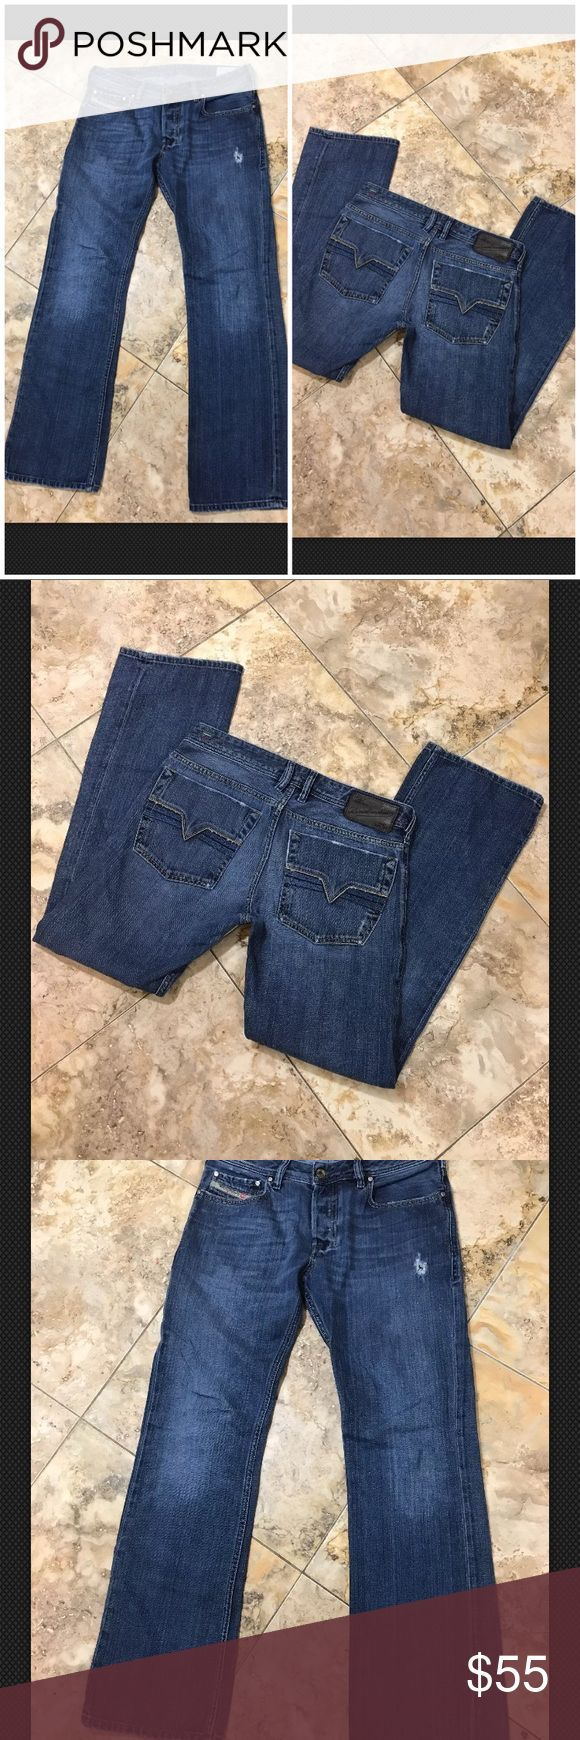 "Diesel zatiny mild bootcut men's jeans w 30 L 32 Diesel zatiny men's jeans size 30"" waist 32"" inseam made in Italy distressed medium blue jeans mild bootcut, I thought they were straight at first Diesel Jeans Bootcut"